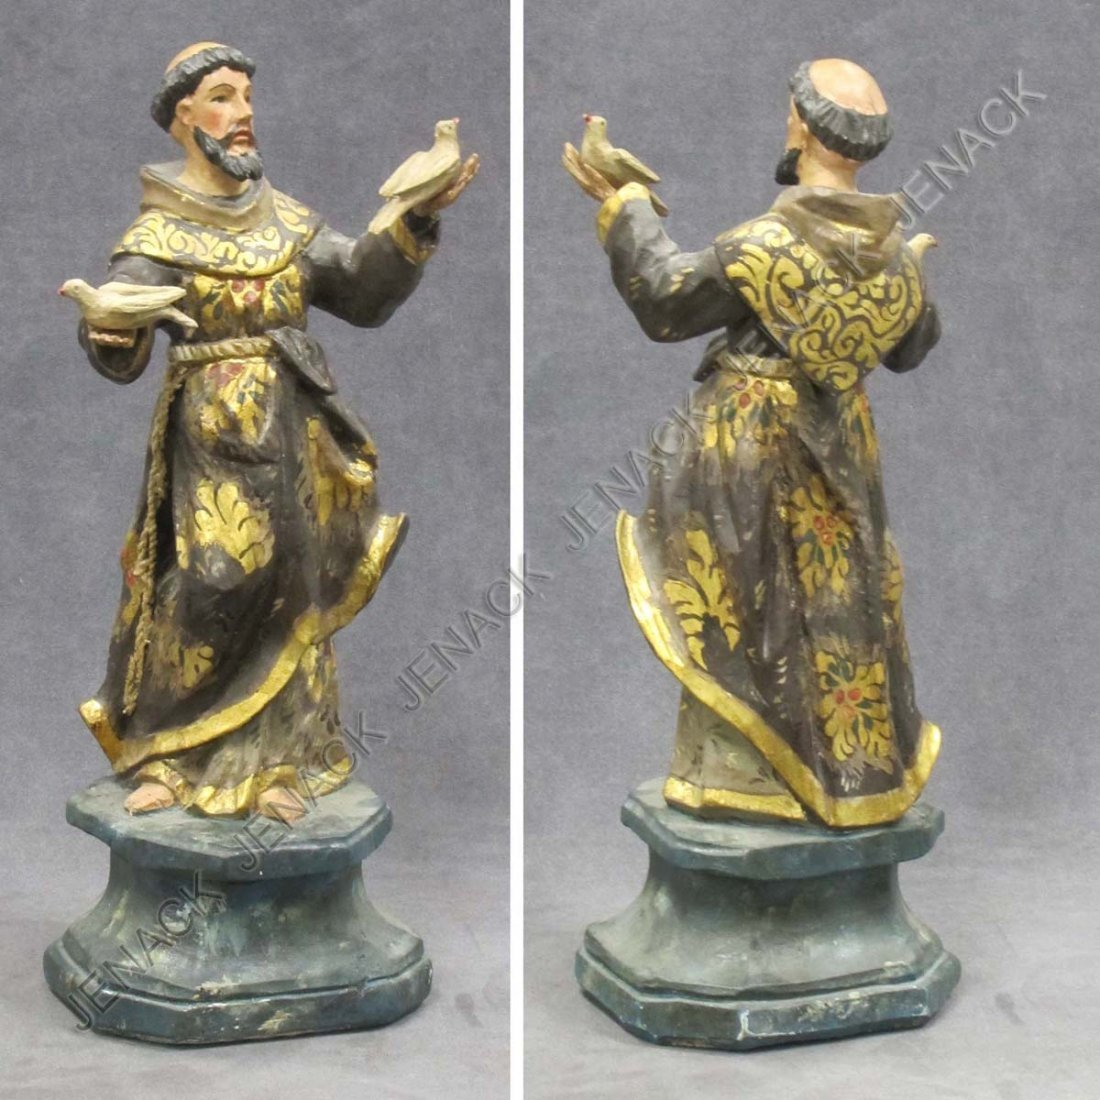 14: SPANISH COLONIAL CARVED AND PAINTED SANTOS FIGURE